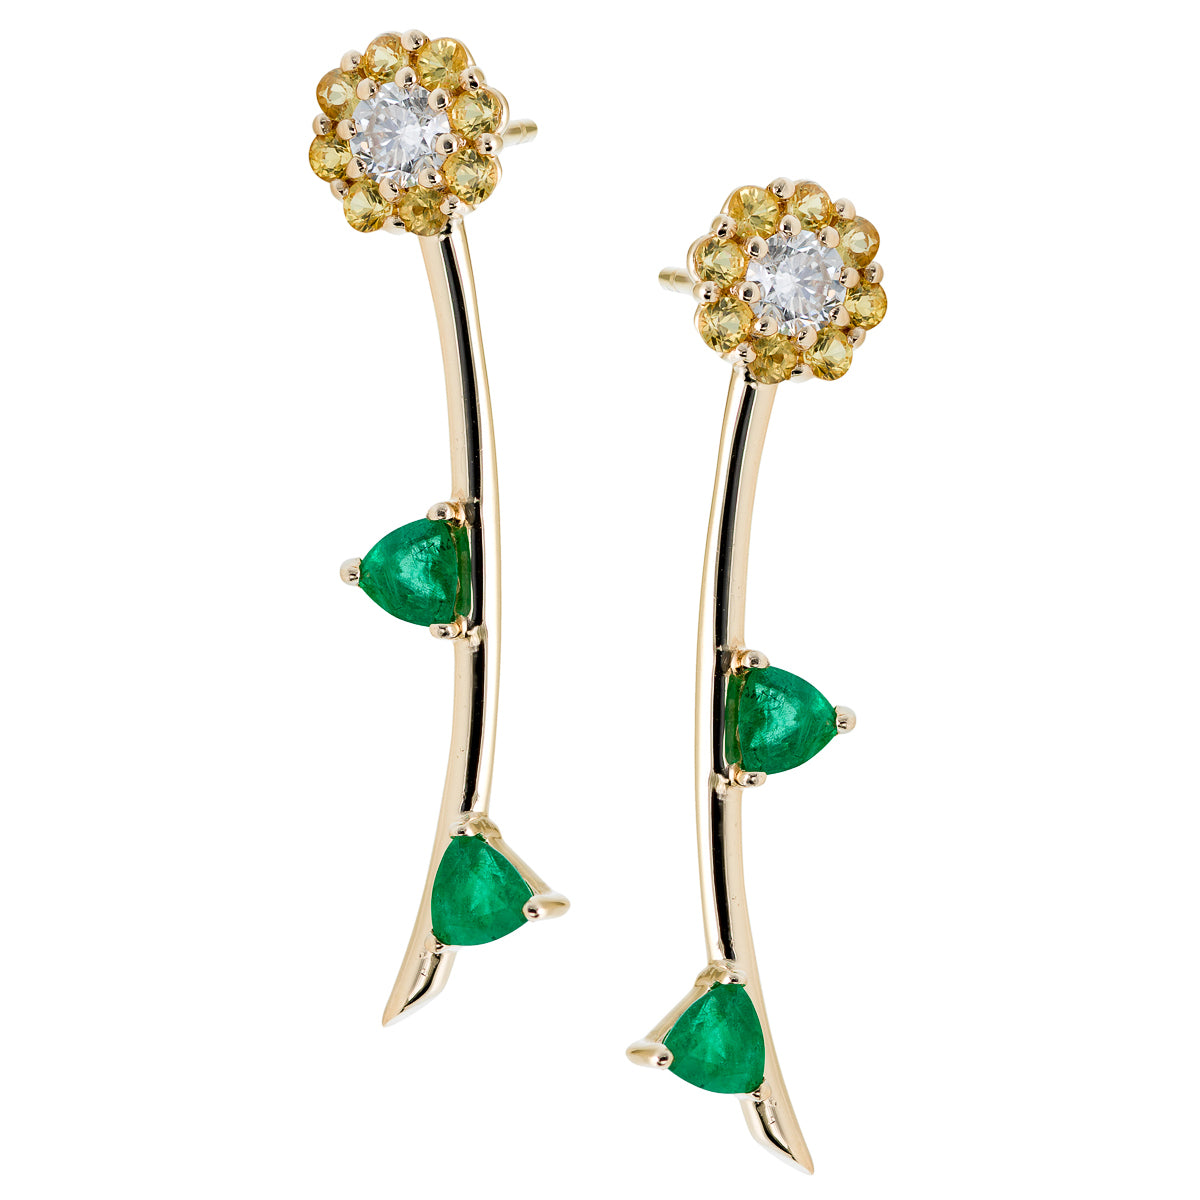 The Look | Yellow Sapphire Full Bloom Stem